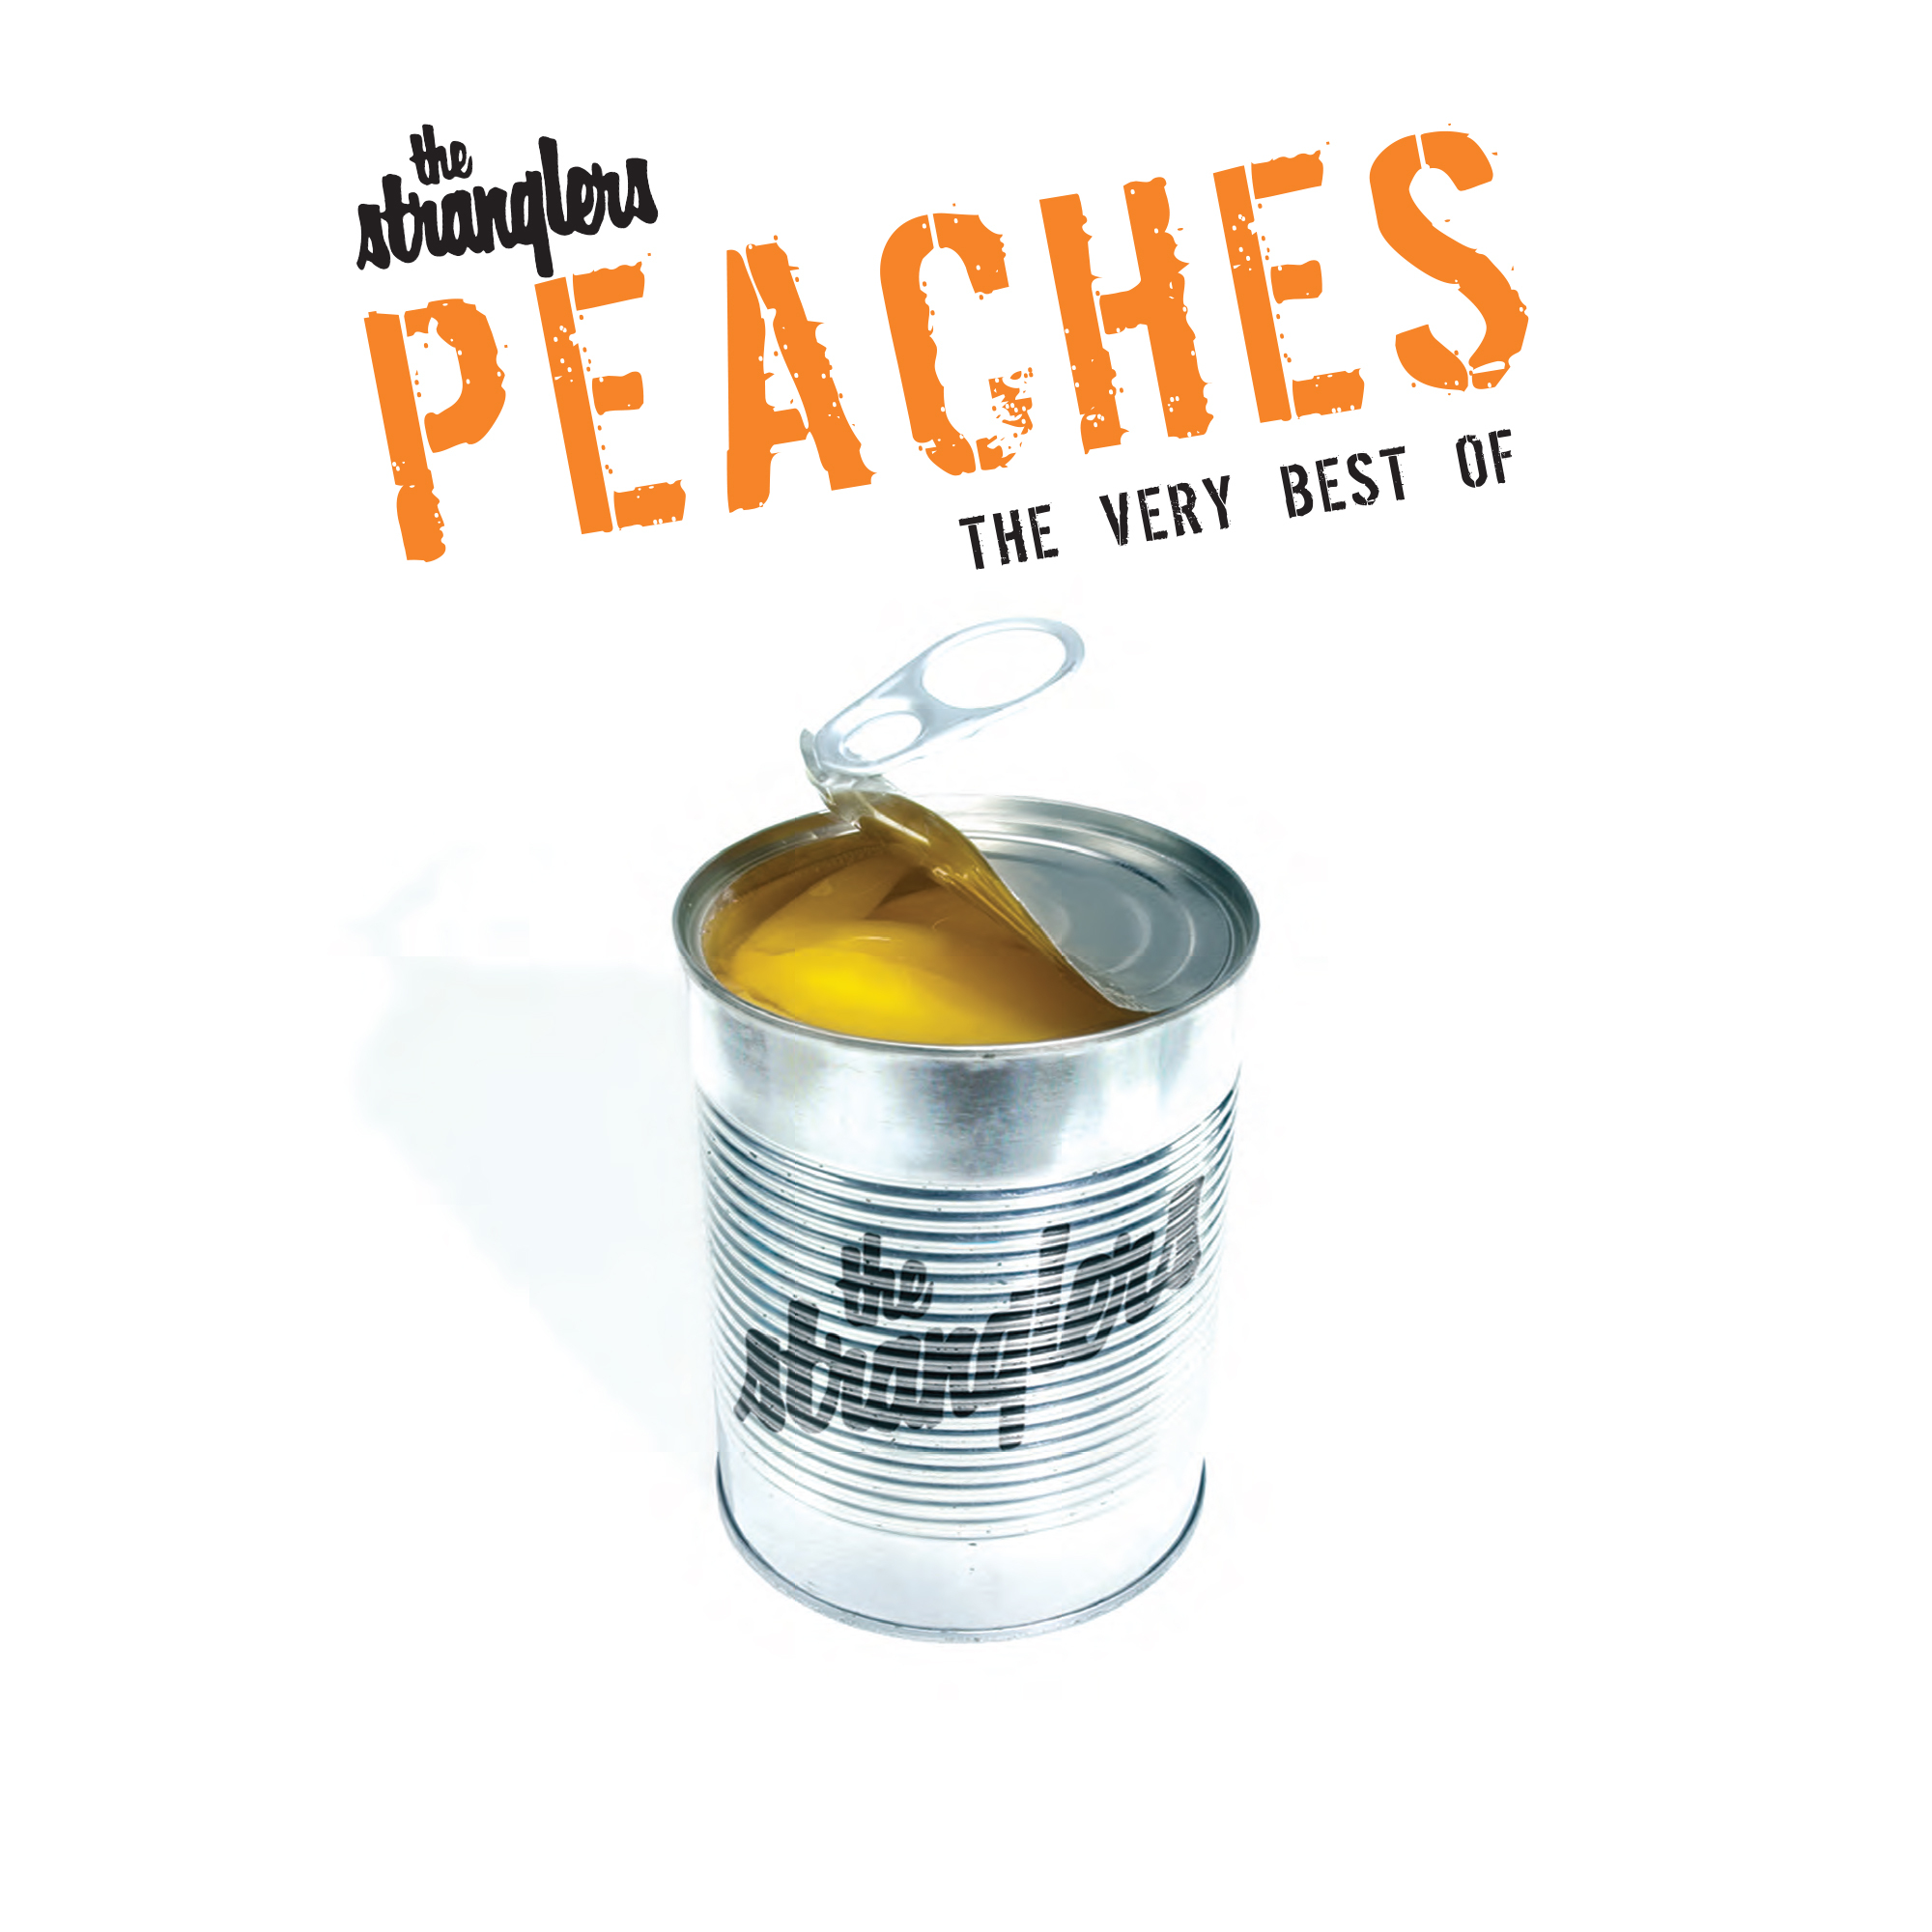 Stranglers - Peaches: The Very Best of the Stranglers [RSD BF 2020]